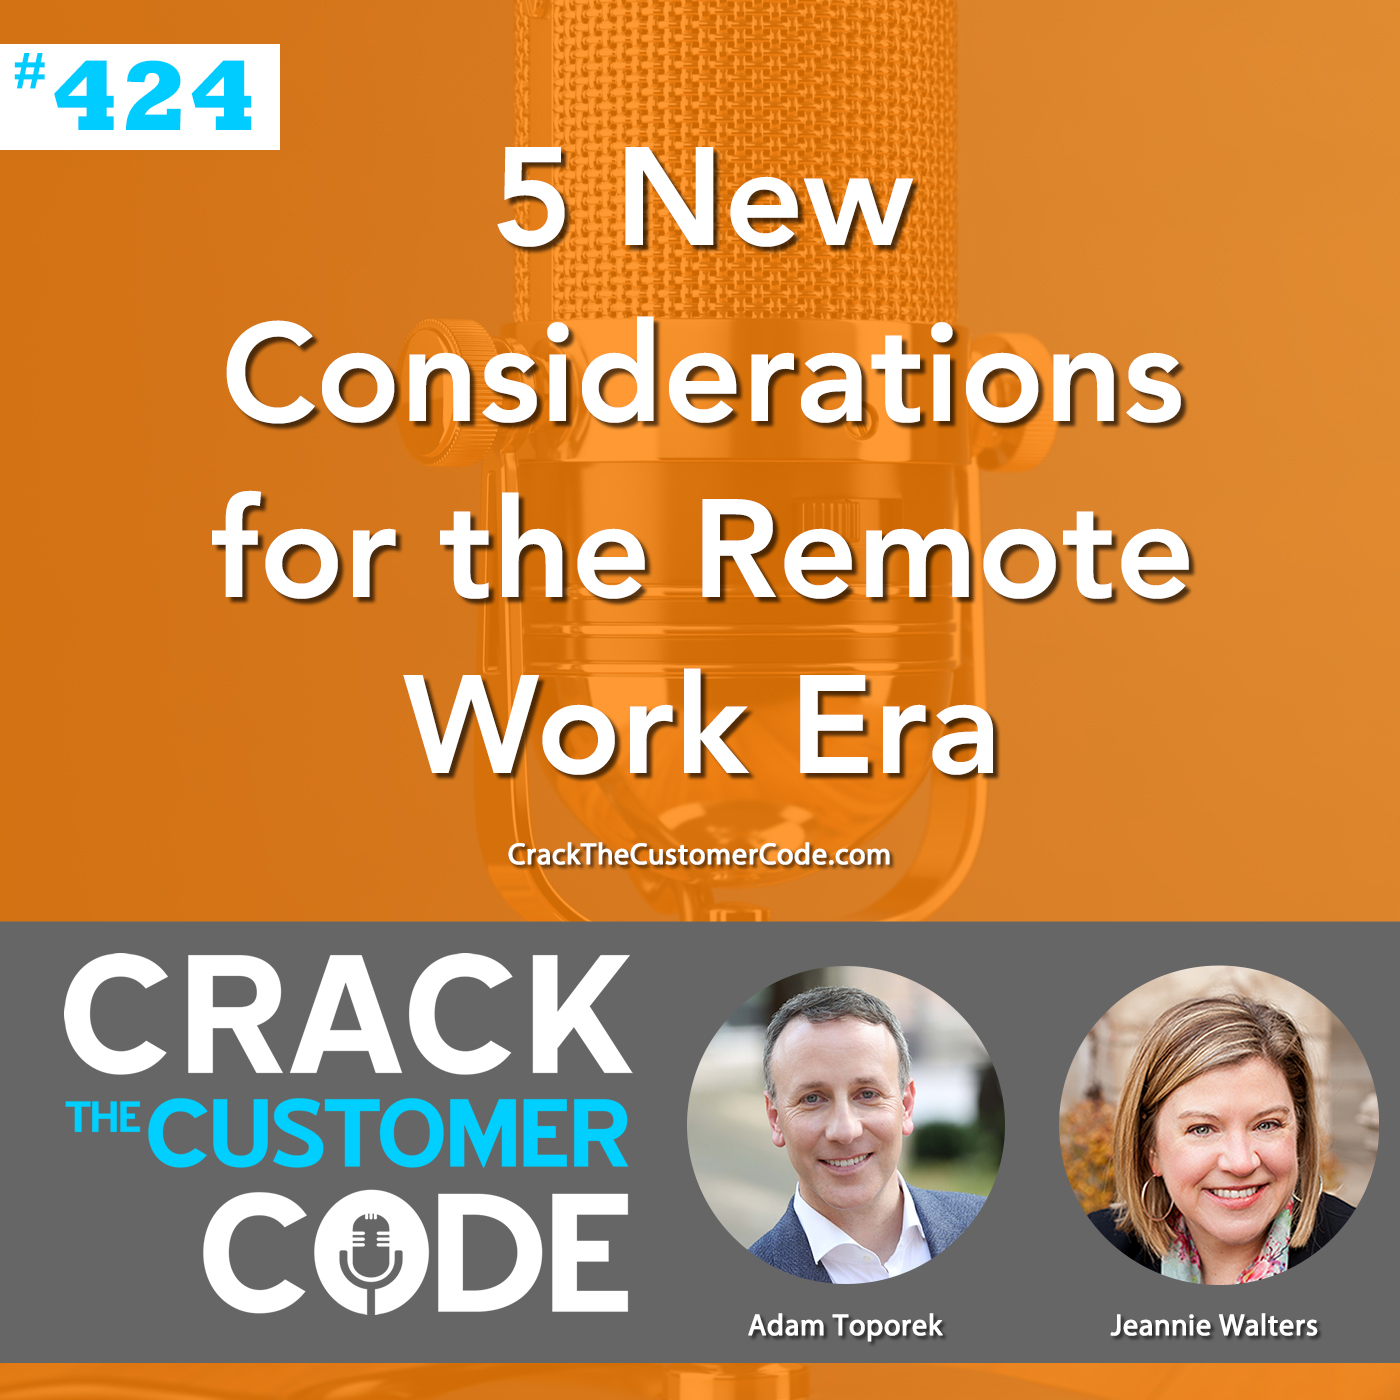 424: 5 New Considerations for the Remote Work Era